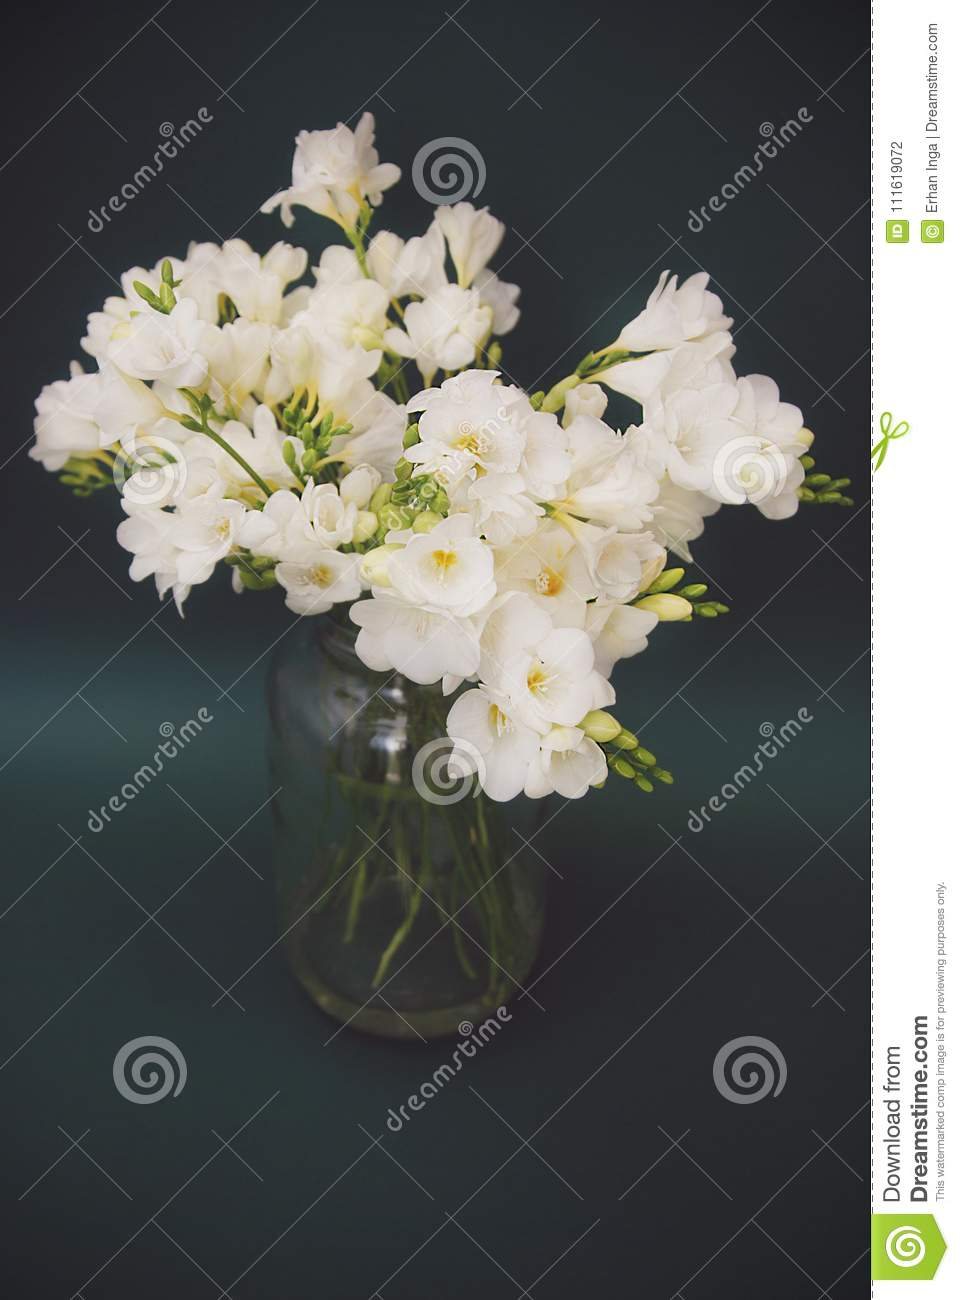 Vintage White Freesia Bouquet of Flowers in Glass Vase on Black Background. close up.